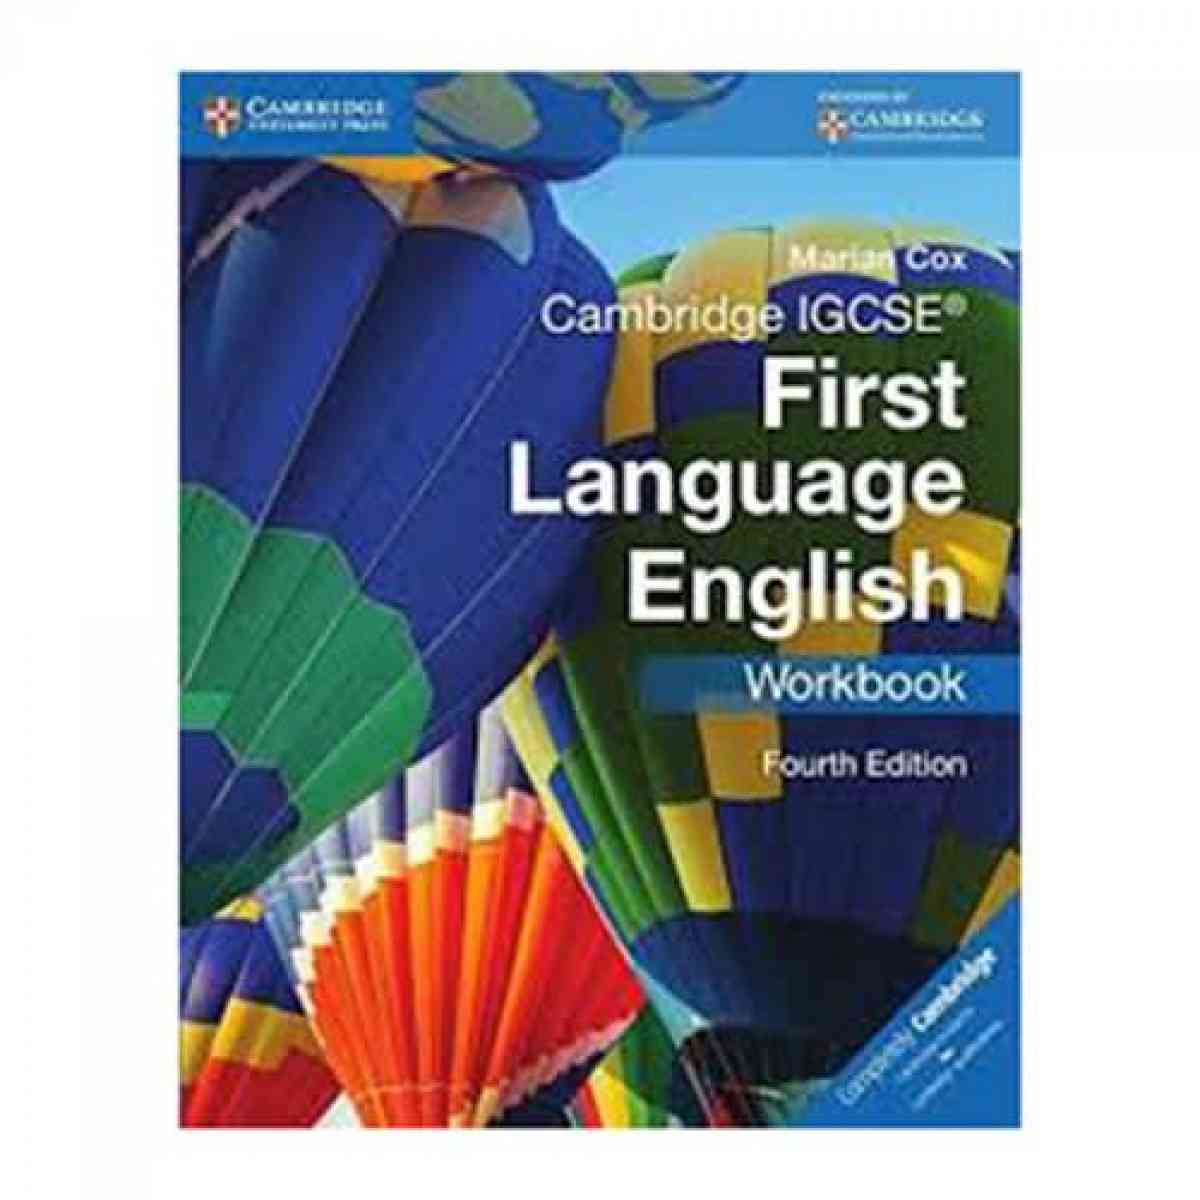 Cambridge IGSCE First Language English Workbook